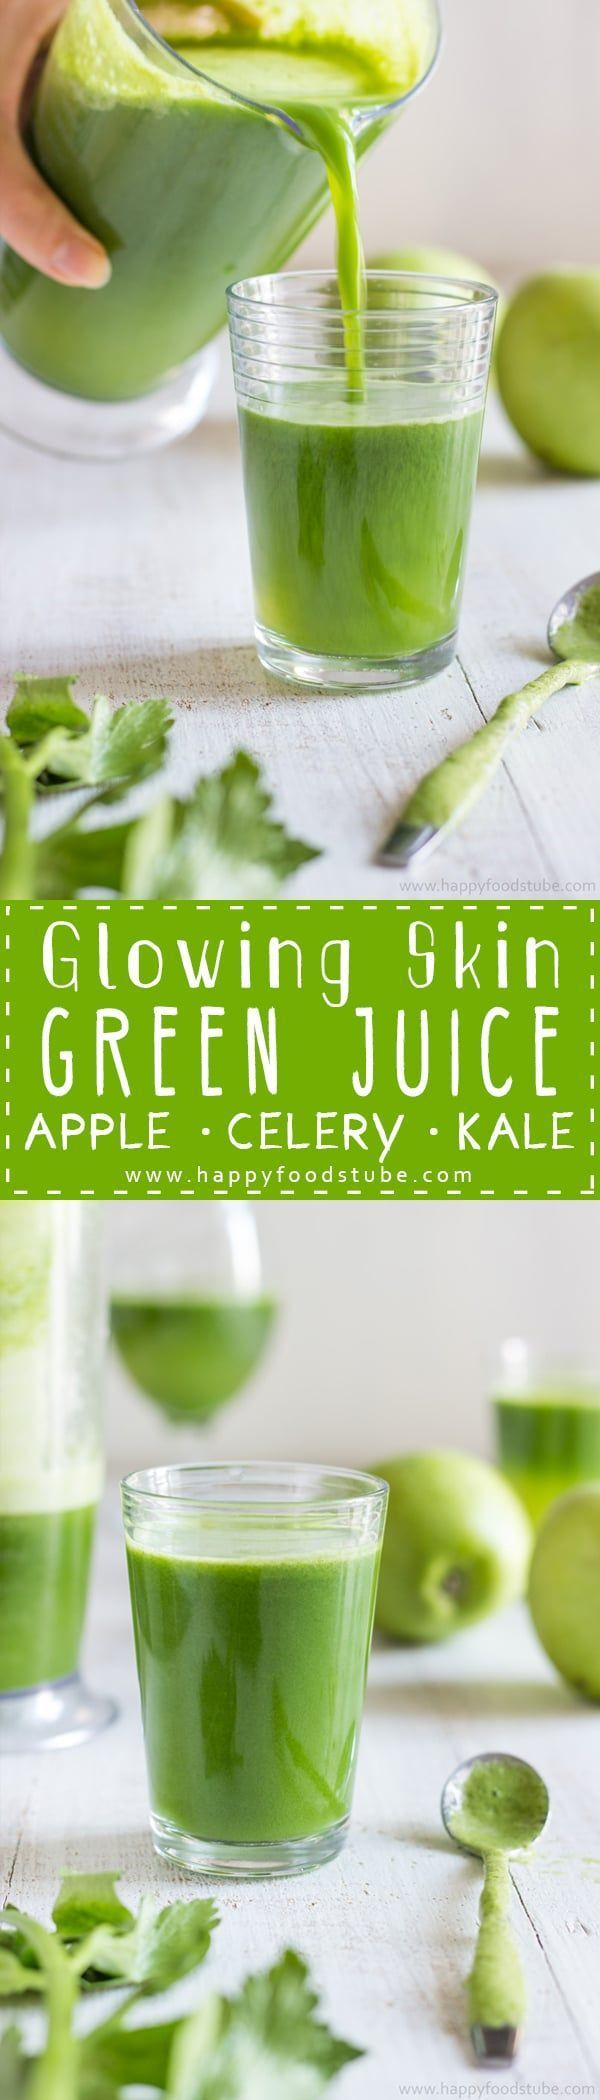 This Green Juice recipe is an easy way to give your skin the glow you are after. No preservatives, only 3 ingredients and 5 minutes to make. Homemade juicing recipe. #greenjuice #vegetable #juice #recipes #juicing #cleanse #howtomake #healthydrinks #weightloss #naturalremedies #detox #glowingskin via @happyfoodstube